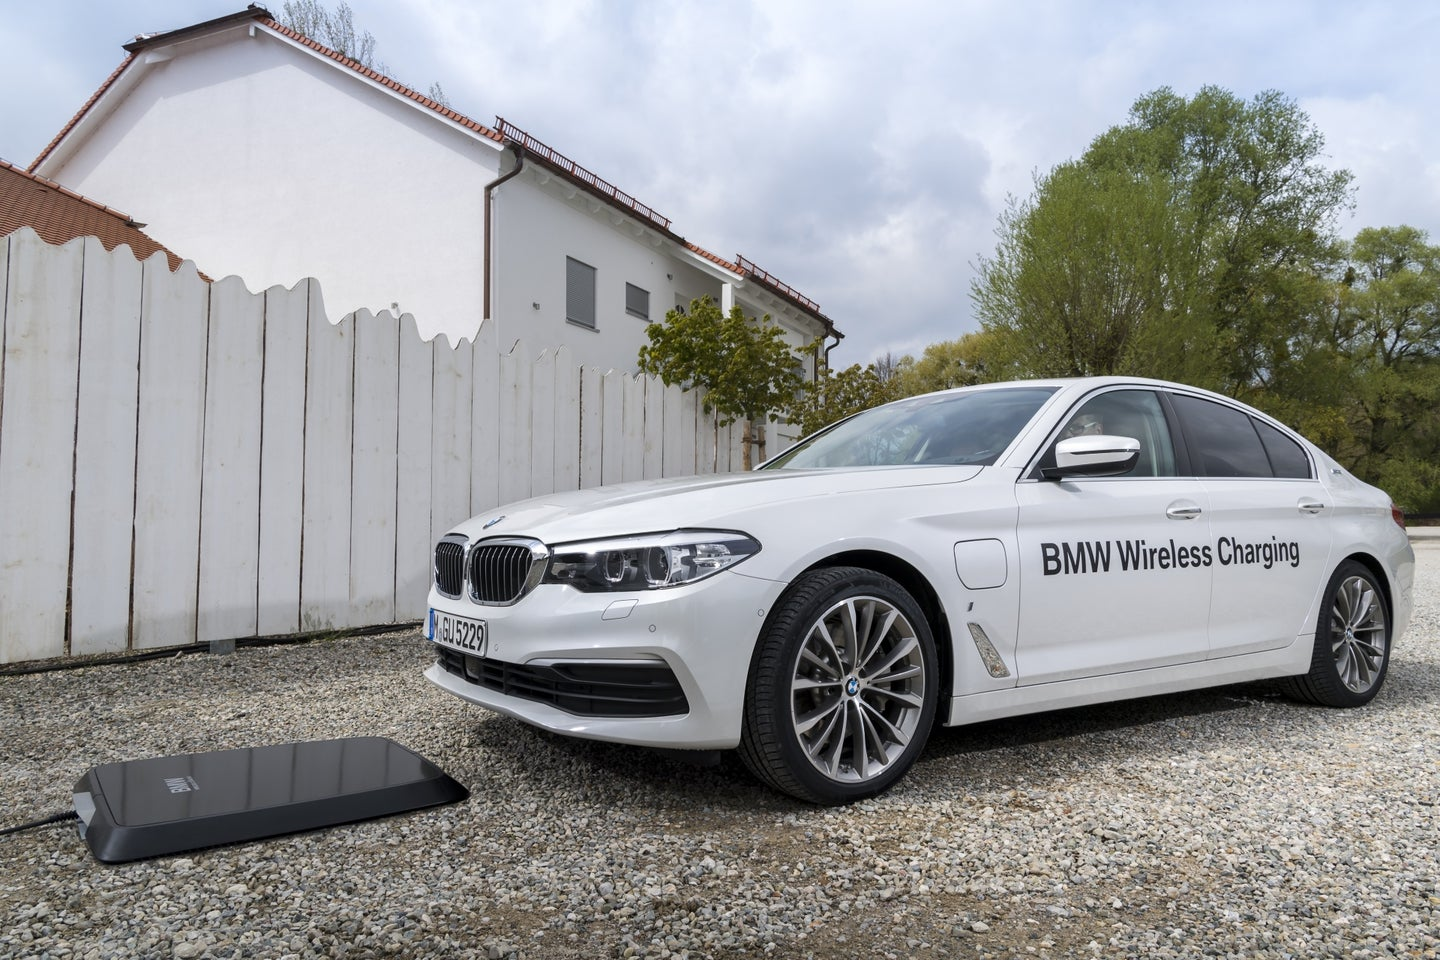 BMW Introduces Wireless Charging for The 530e iPerformance Plug-In Hybrid